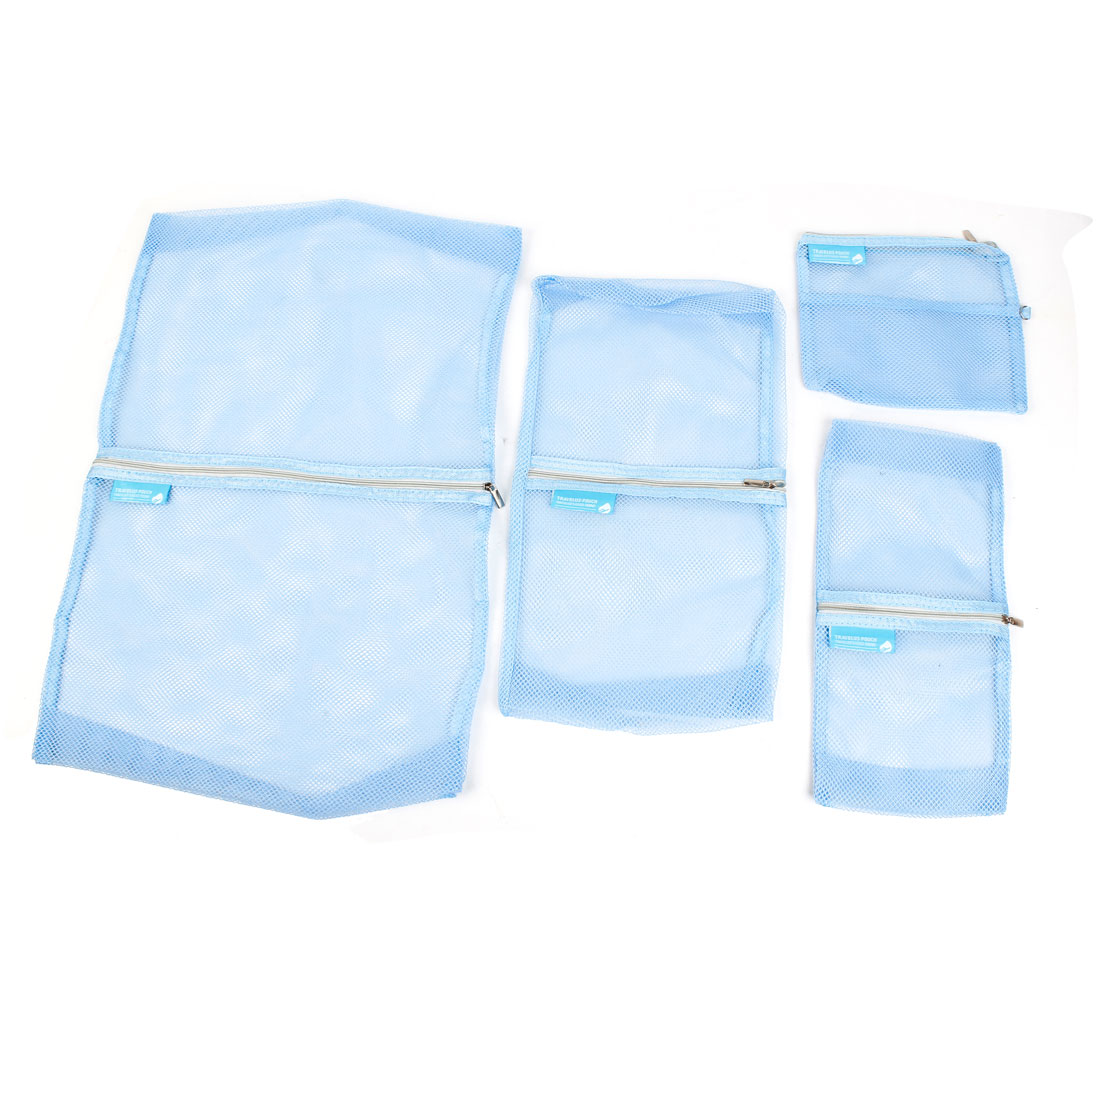 4 in 1 Blue Meshy Design Travel Zippered Storage Bag Pouch Sets